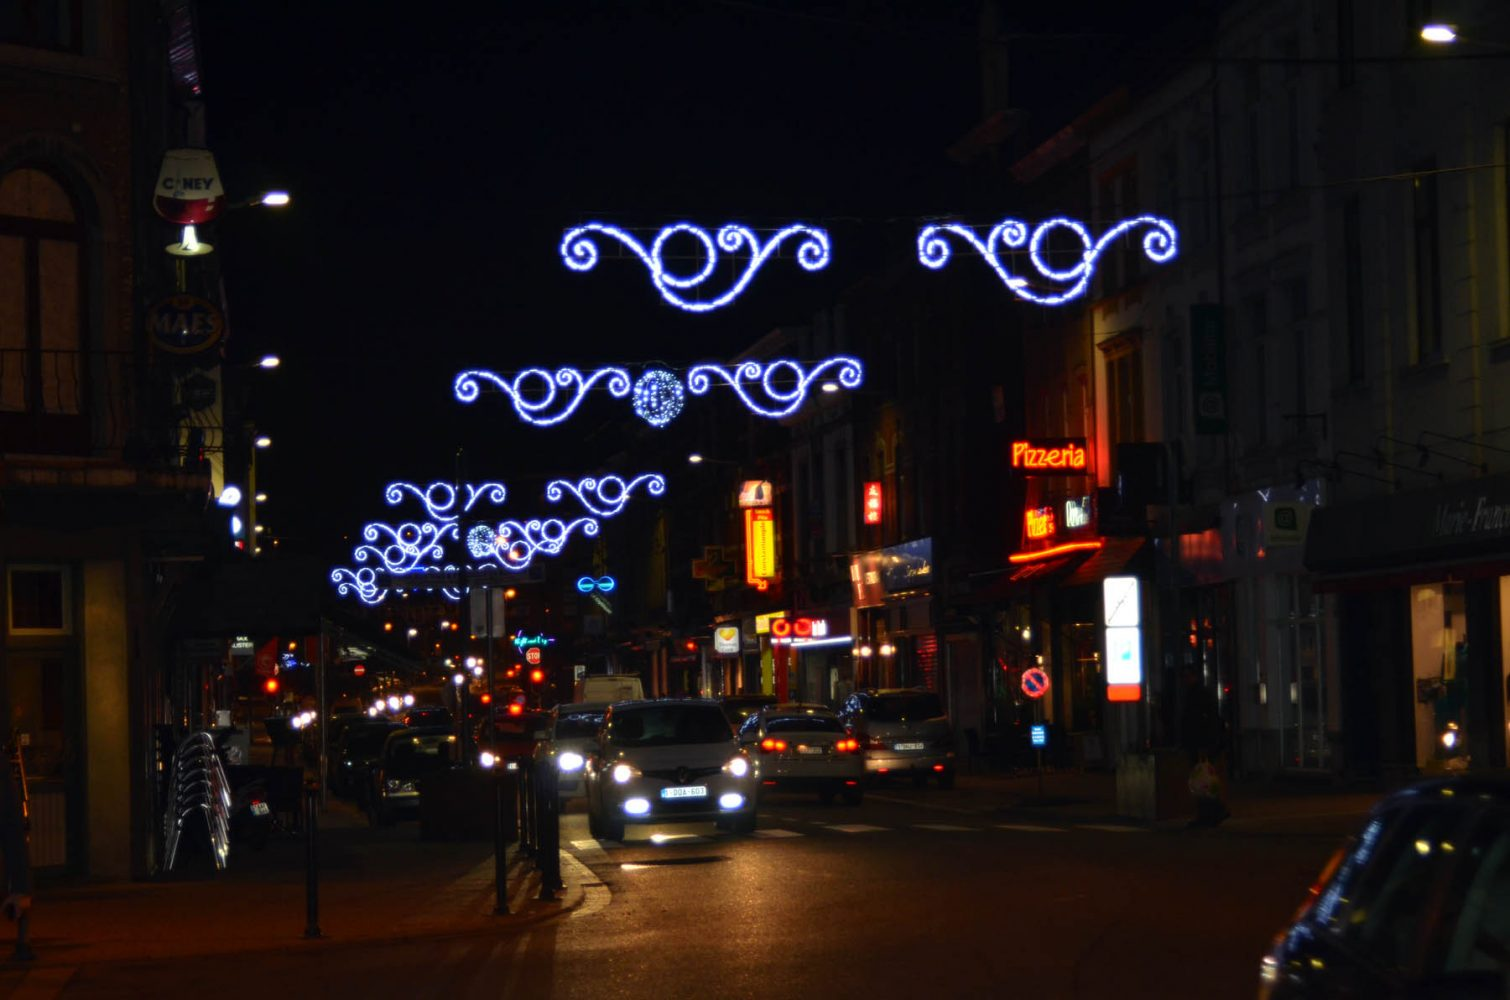 Inauguration des illuminations de Noël 2015